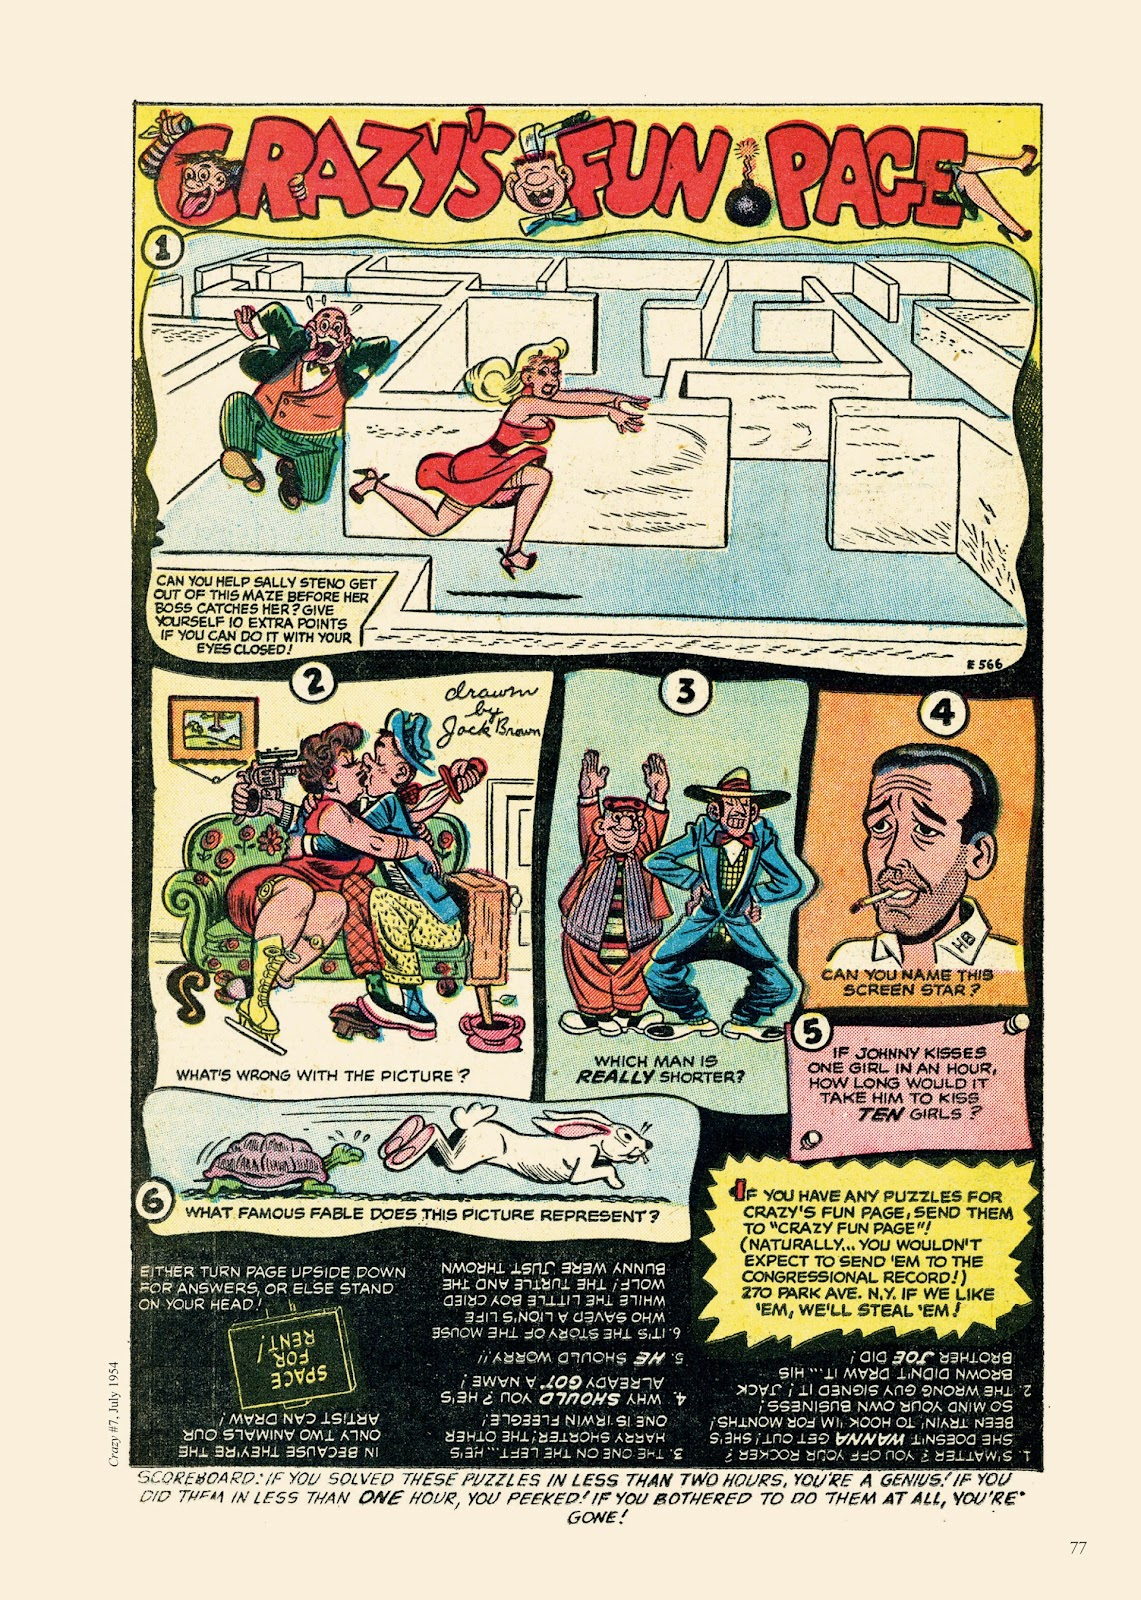 Read online Sincerest Form of Parody: The Best 1950s MAD-Inspired Satirical Comics comic -  Issue # TPB (Part 1) - 78